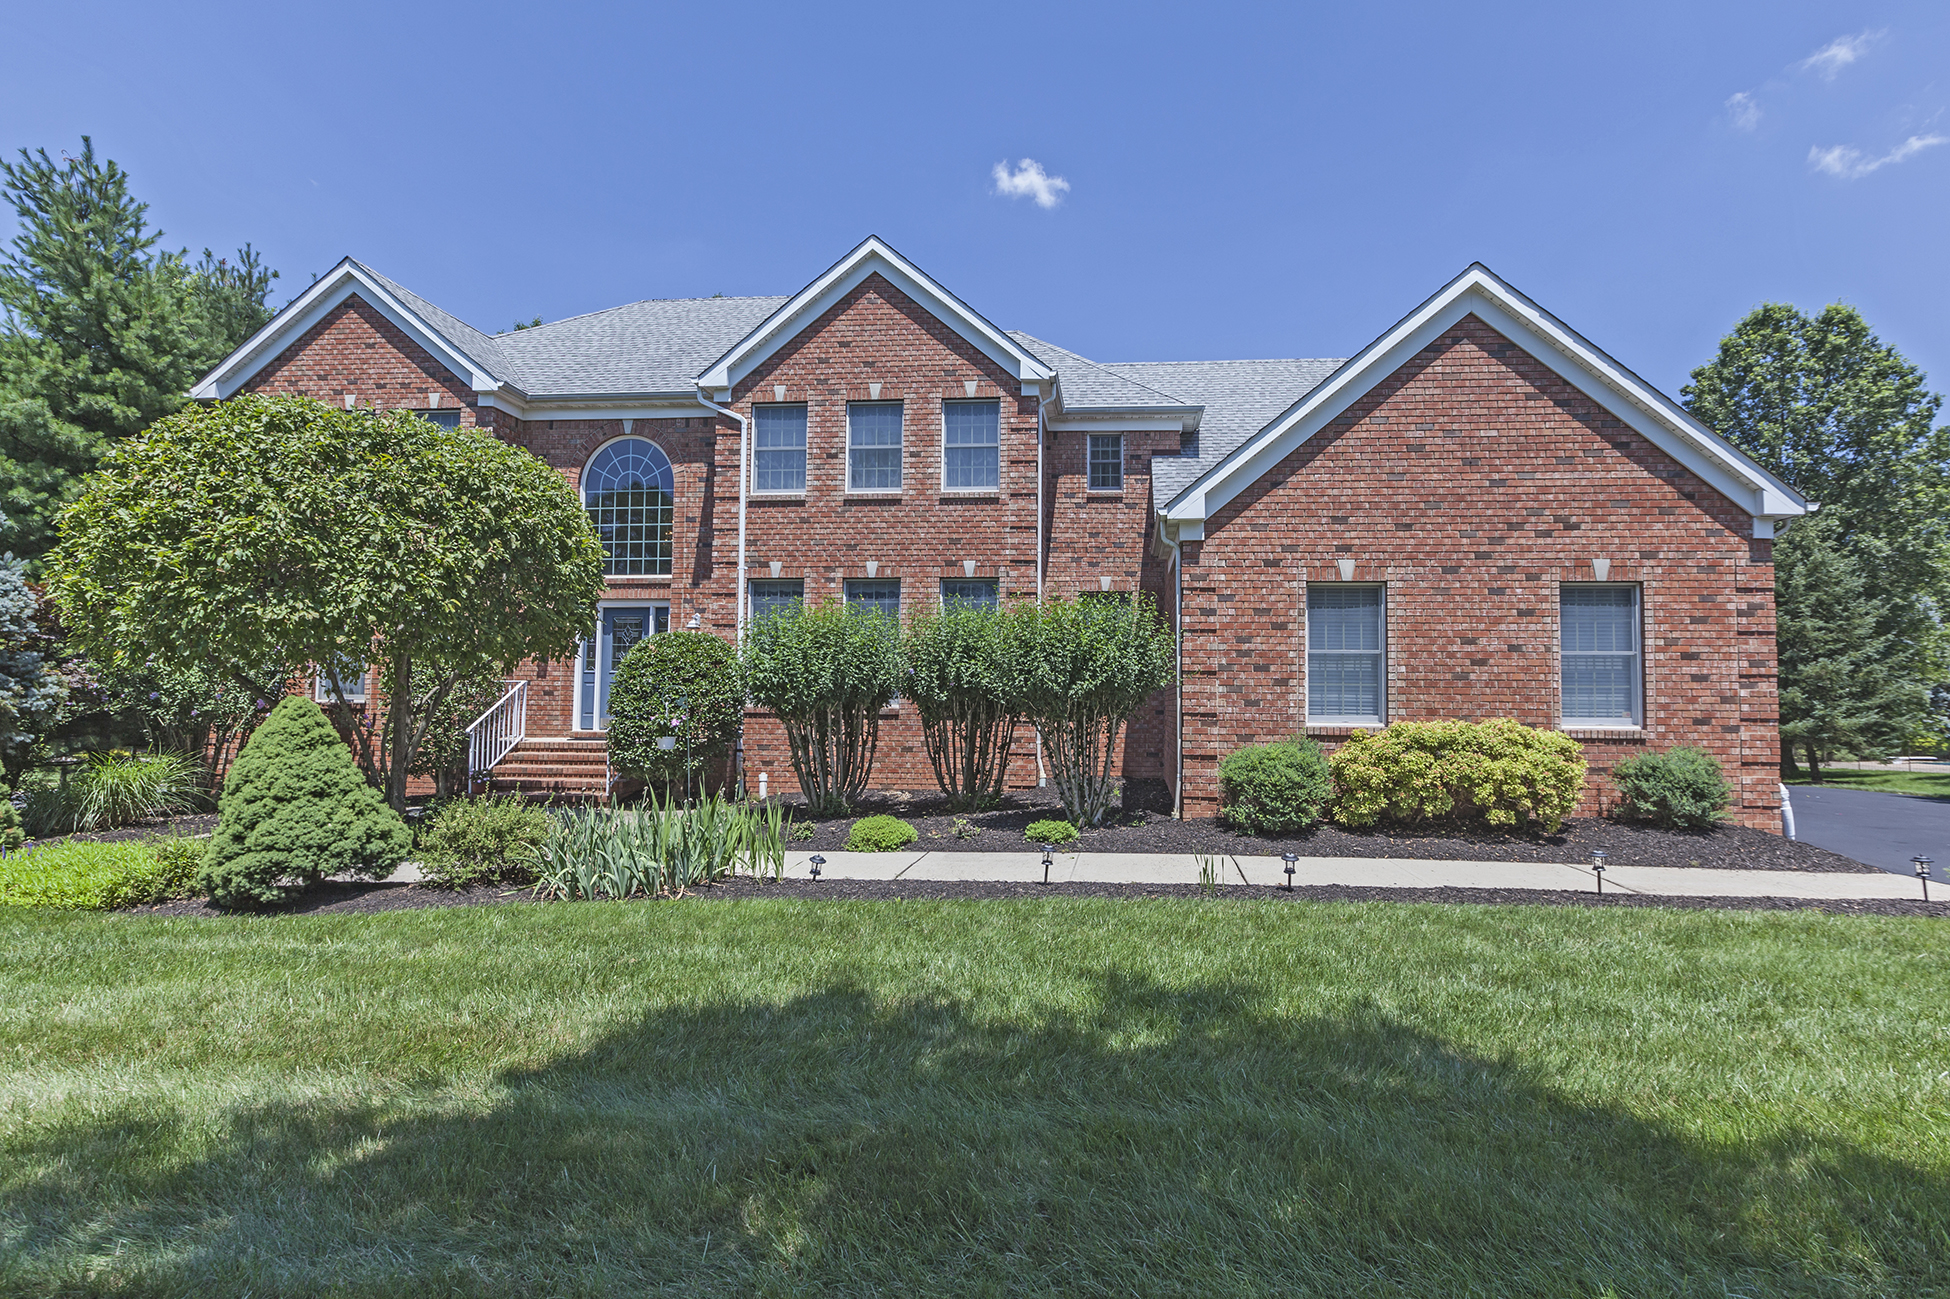 Property For Sale at Big, Beautiful Corner Lot for Belle Mead Colonial - Montgomery Township